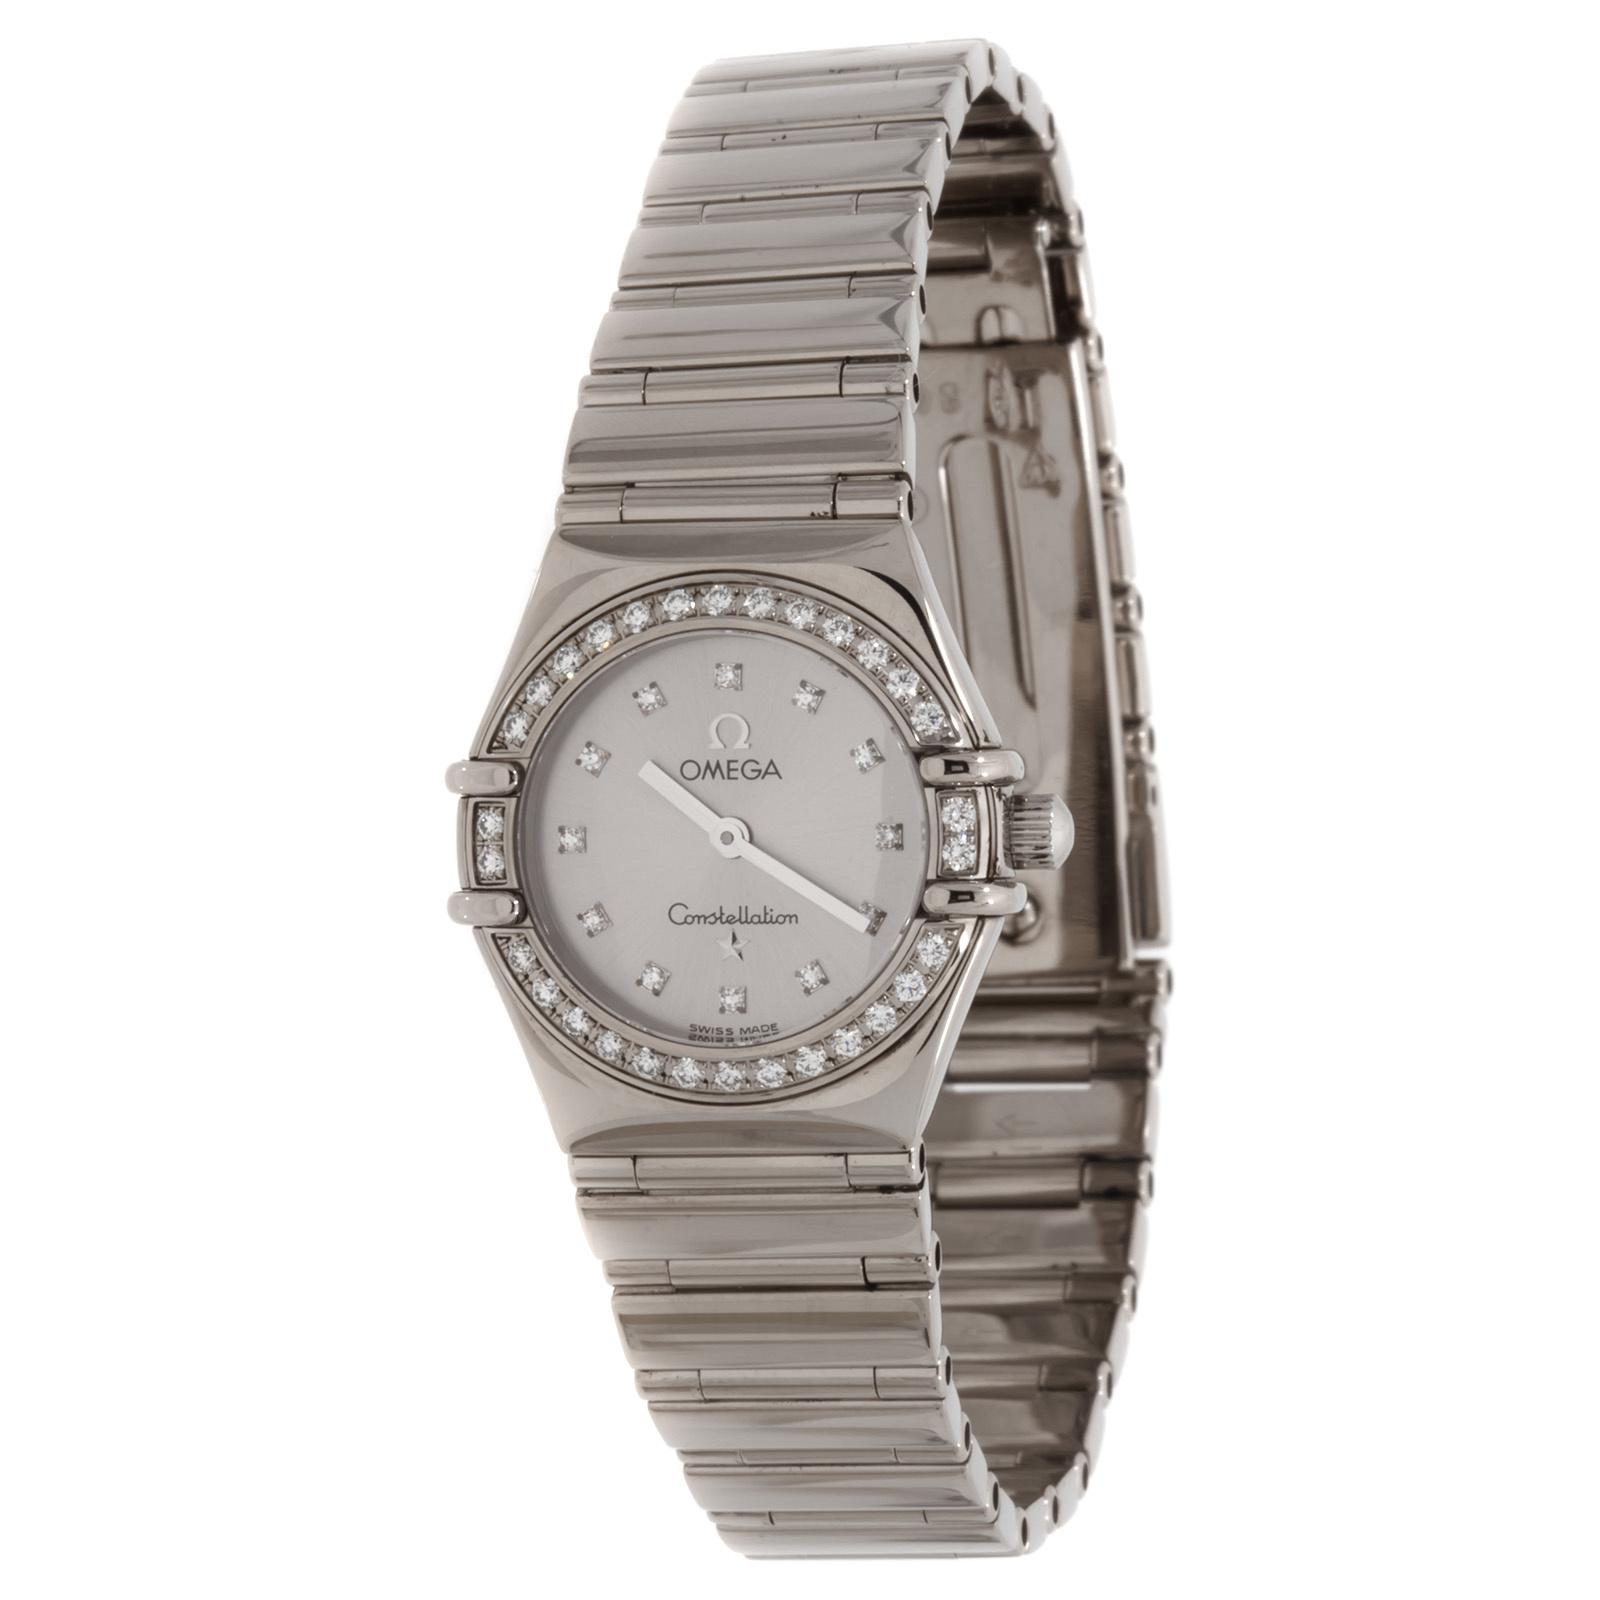 Omega Constellation My Choice in White Gold with Diamond Bezel